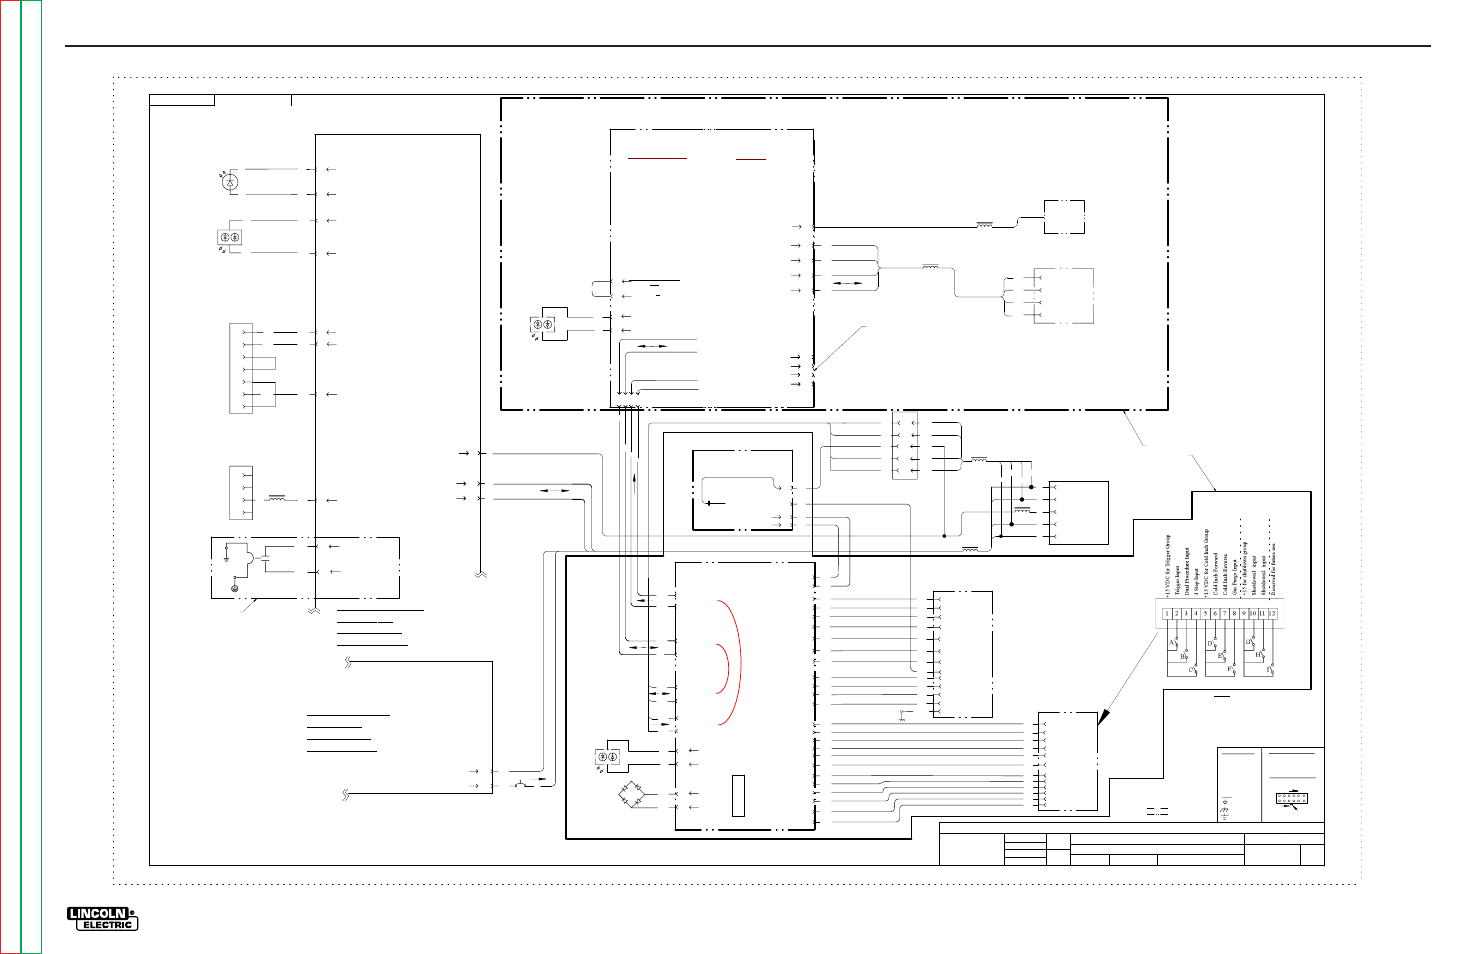 Electrical diagrams, Schematic numbers are given for